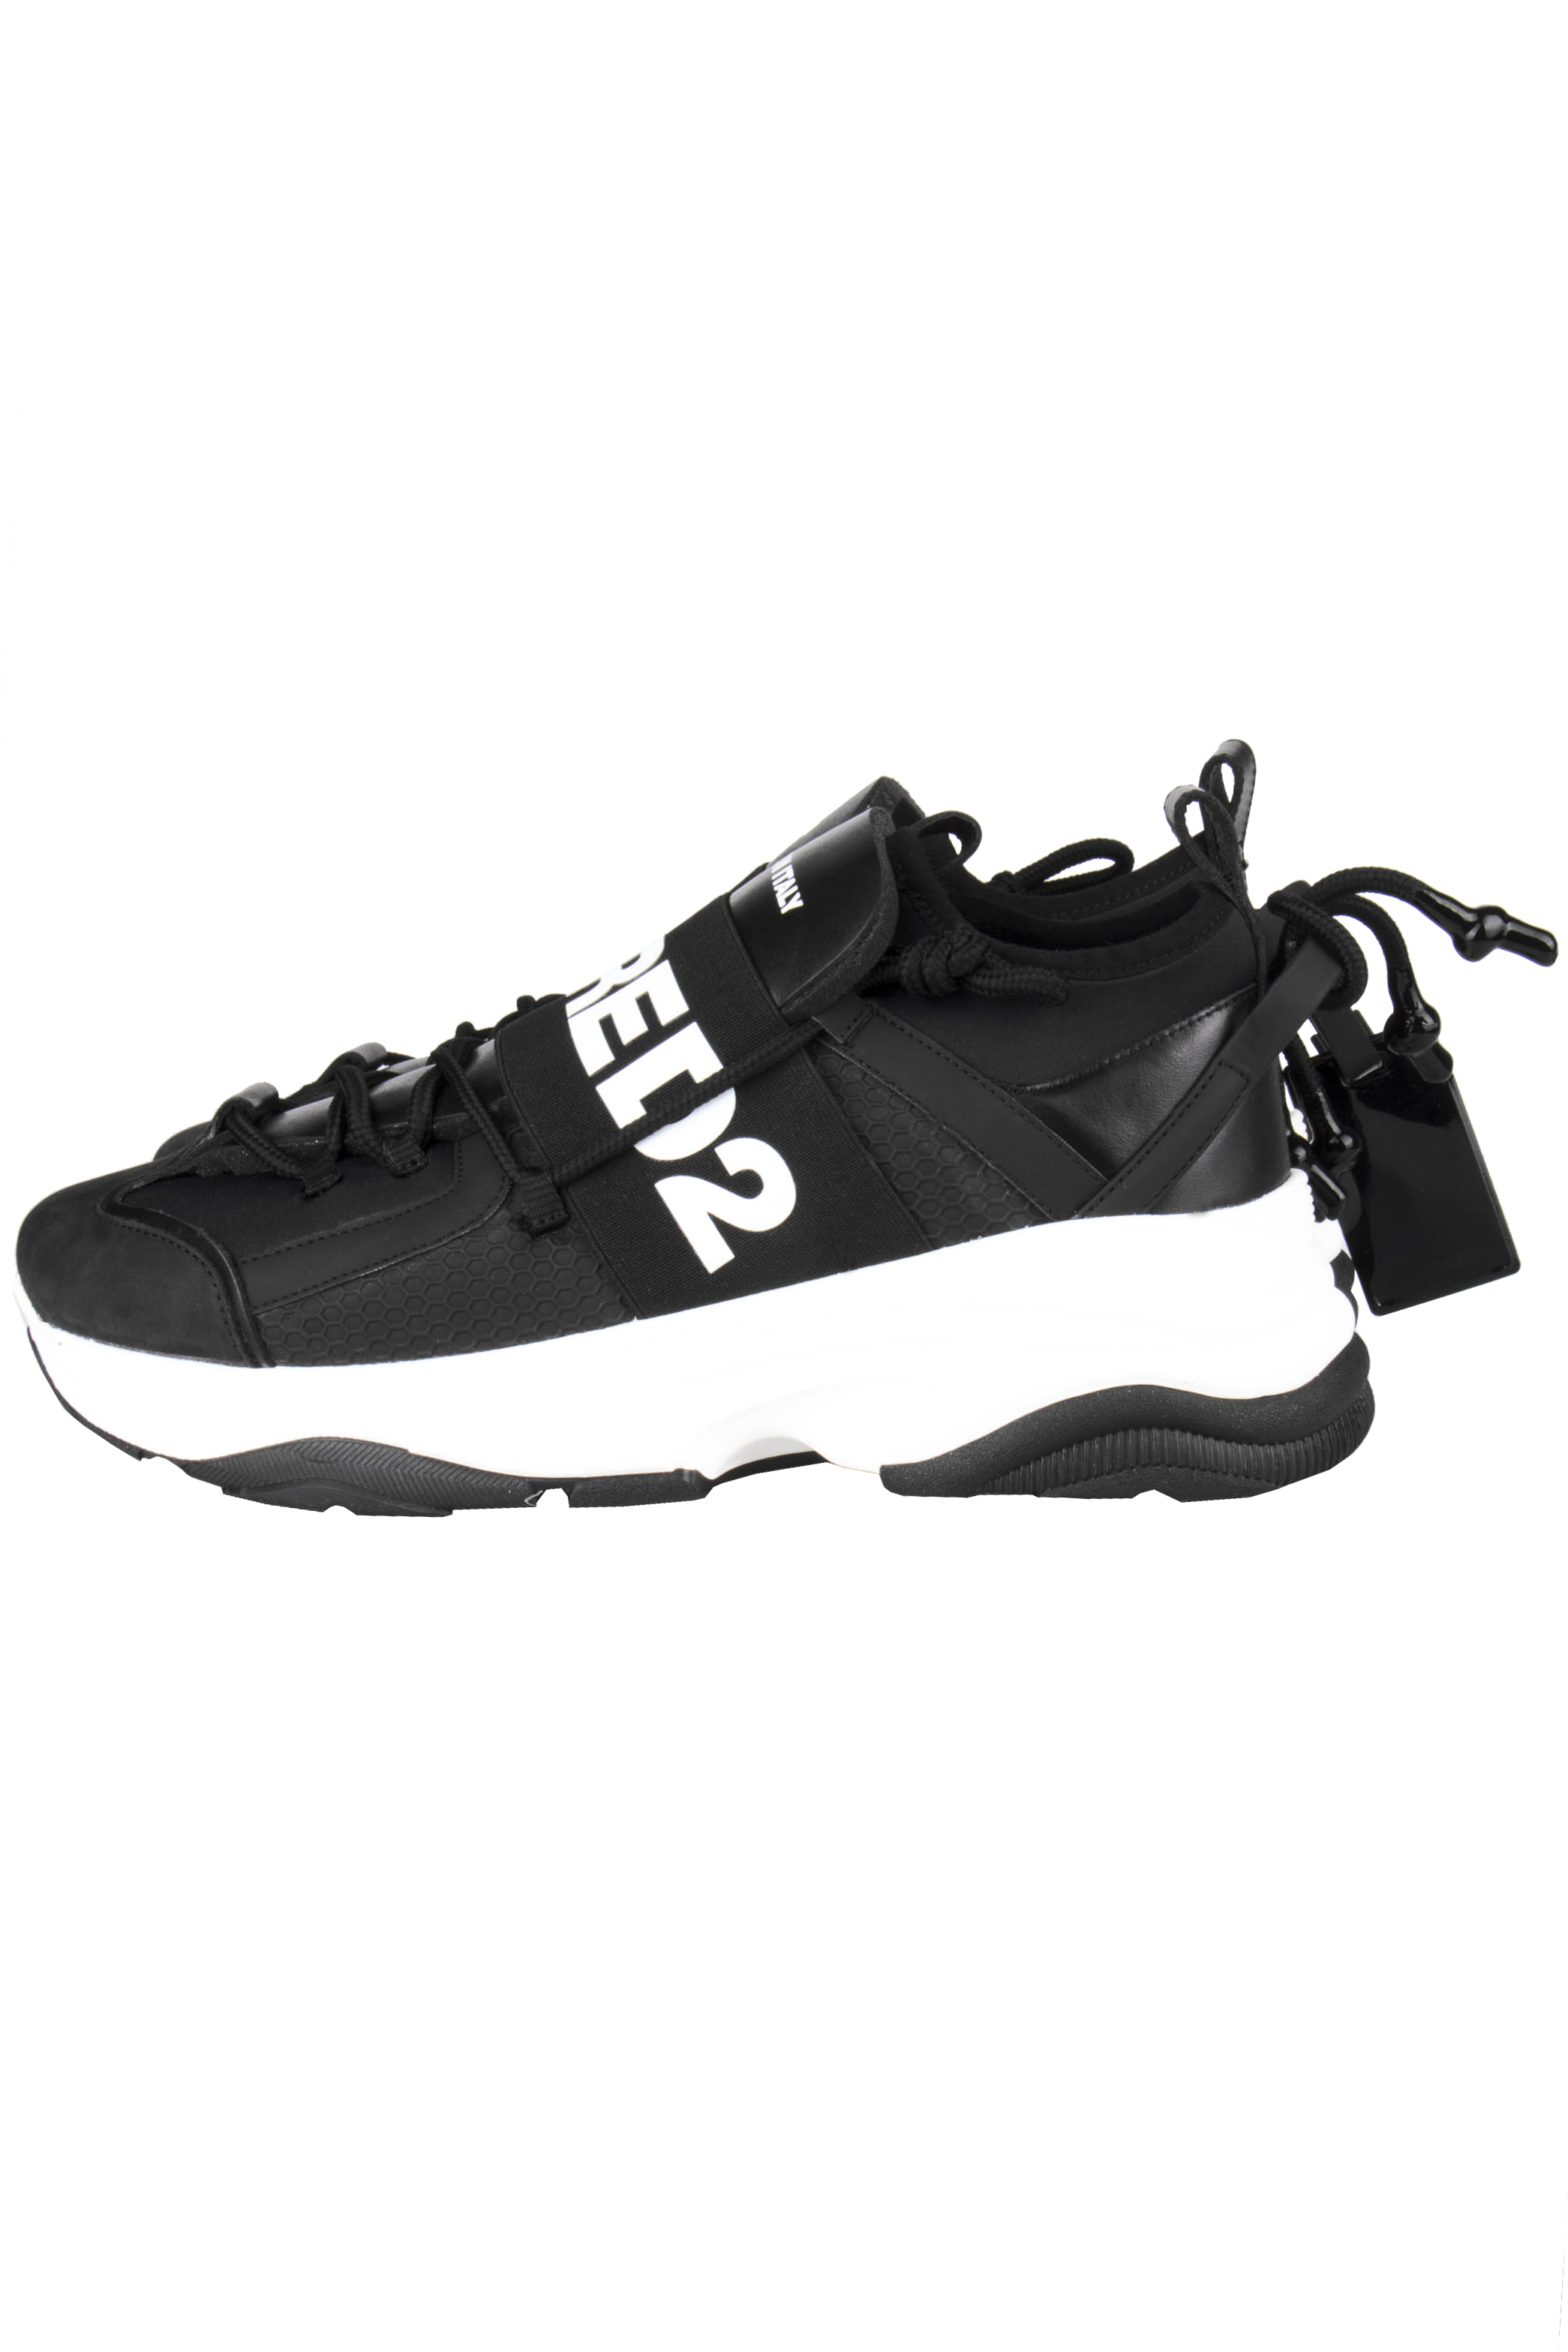 DSQUARED2 D-Bumpy One Sneakers